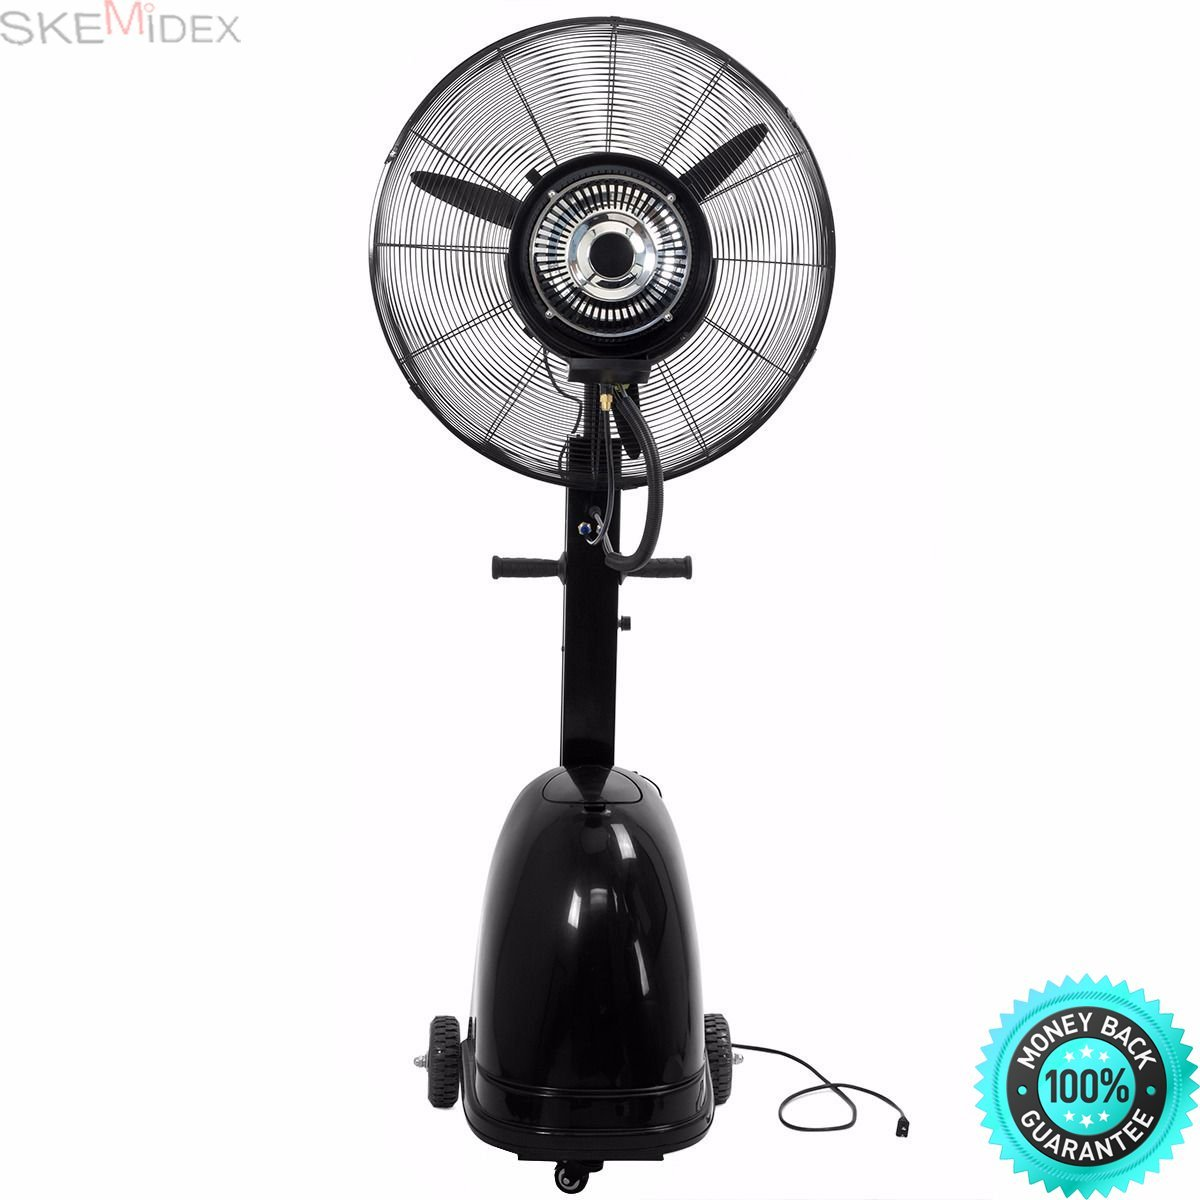 """SKEMIDEX Commercial 26"""" High-Velocity Outdoor indoor Misting Fan Black Industrial Cool And home depot portable fans box fans lowes fans tower fans fans at home depot fans ceiling portable fan tower"""